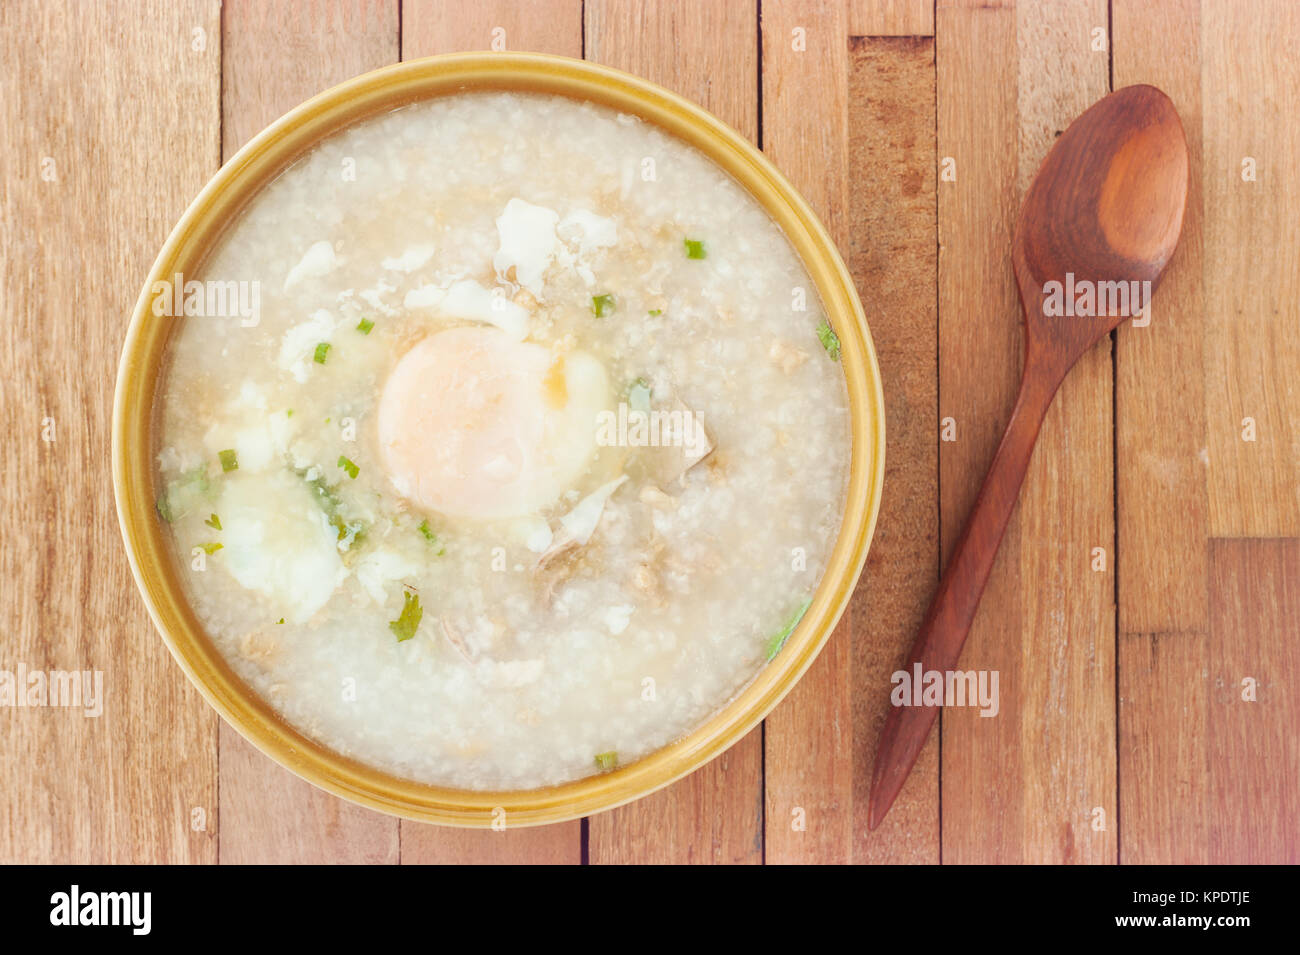 Traditional Chinese Food Rice Bowl With Vegetables And Egg